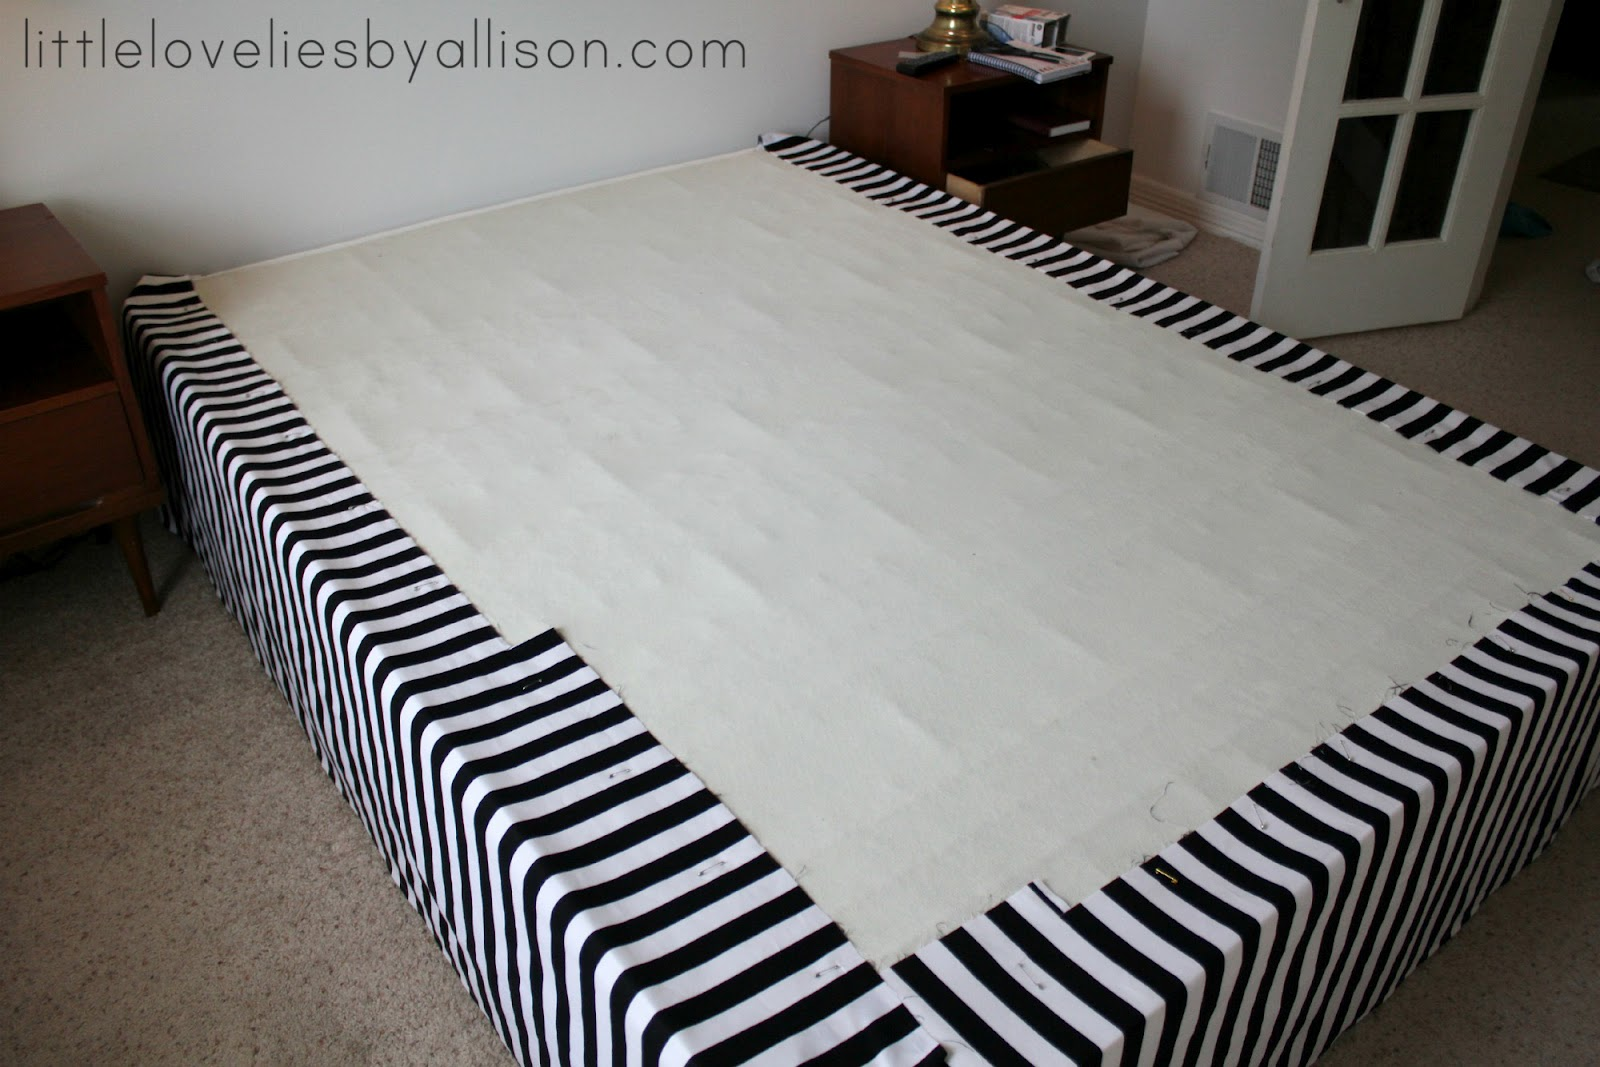 Little lovelies: tutorial: easy diy bed skirt